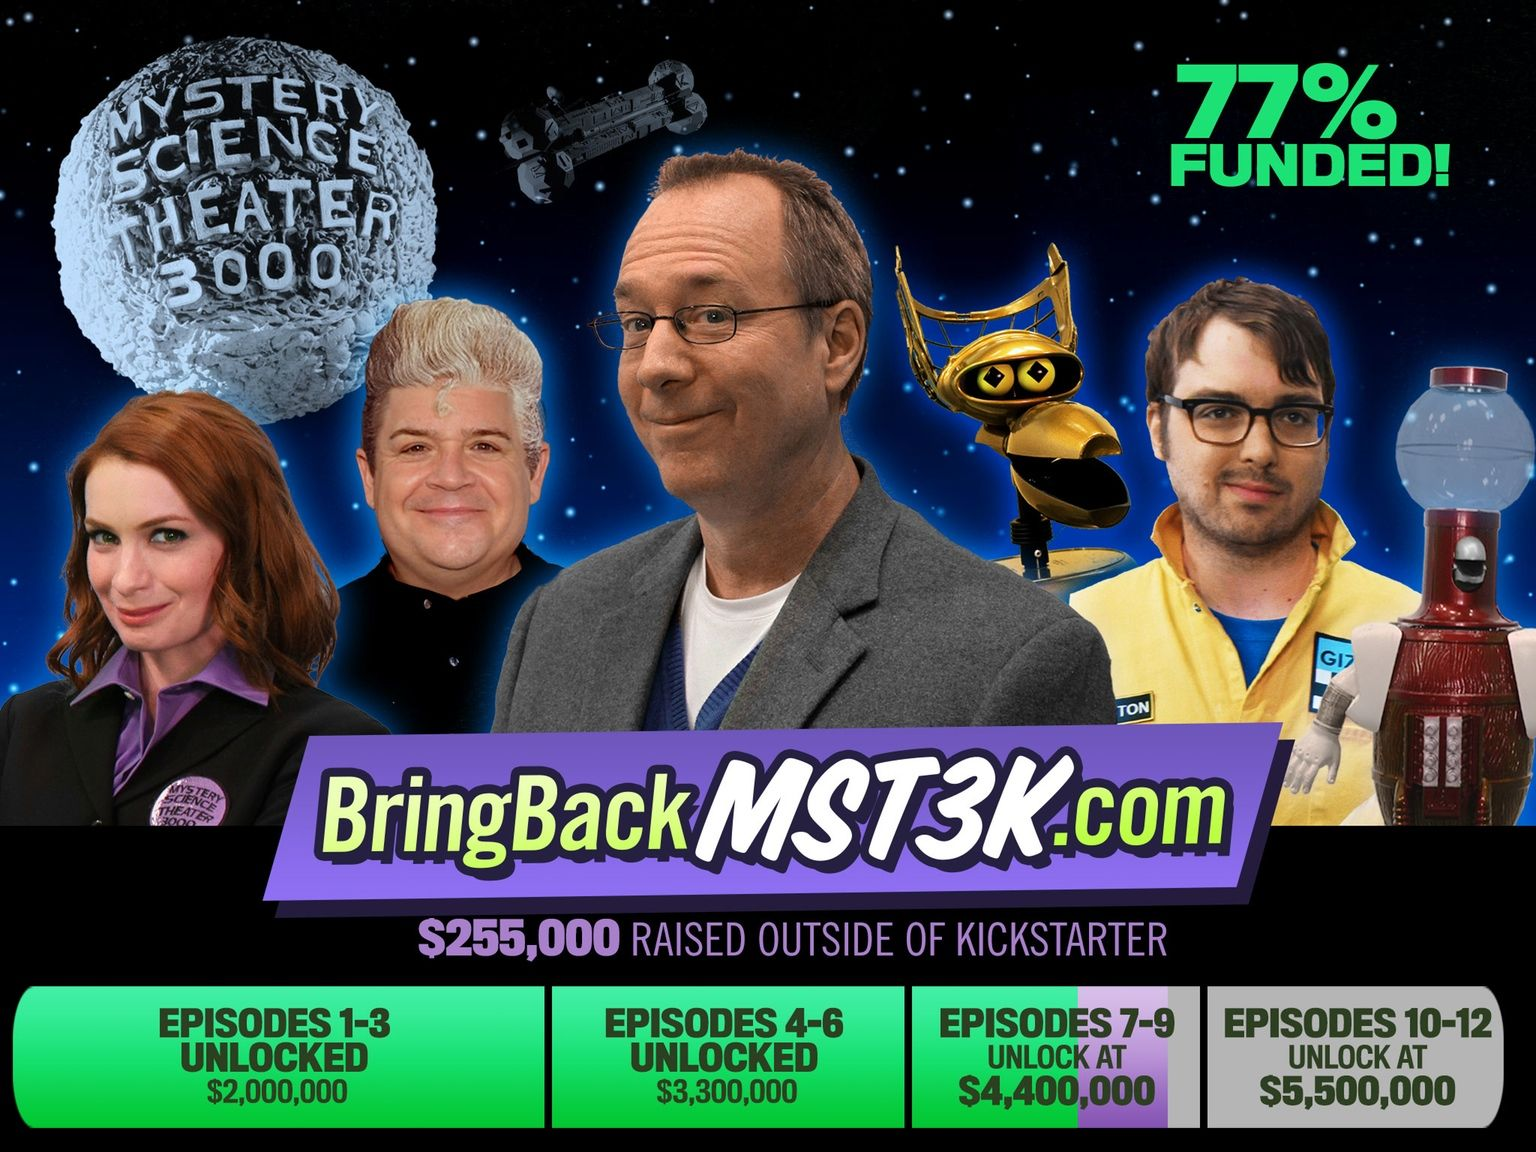 Thanks to you, MST3K will get at least SIX NEW EPISODES... but if we can reach $5.5M, we'll make a full season of TWELVE!